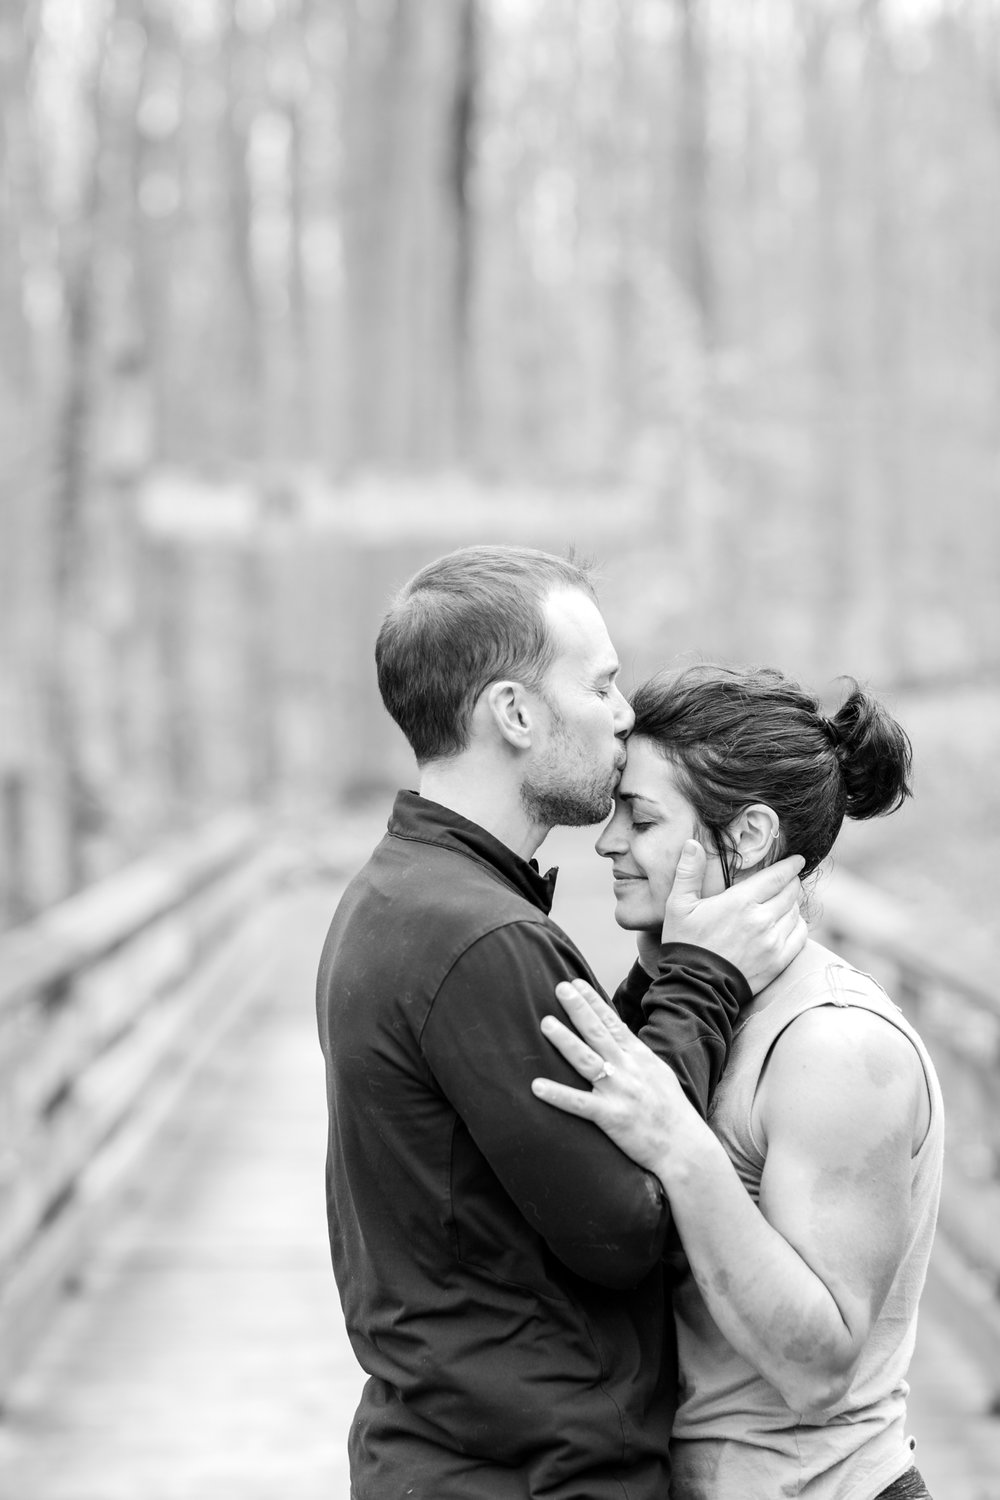 Matty & Angel Proposal Engagement-212_baltimore-maryland-proposal-and-engagement-photographer-oregon-ridge-engagement-anna-grace-photography-photo.jpg